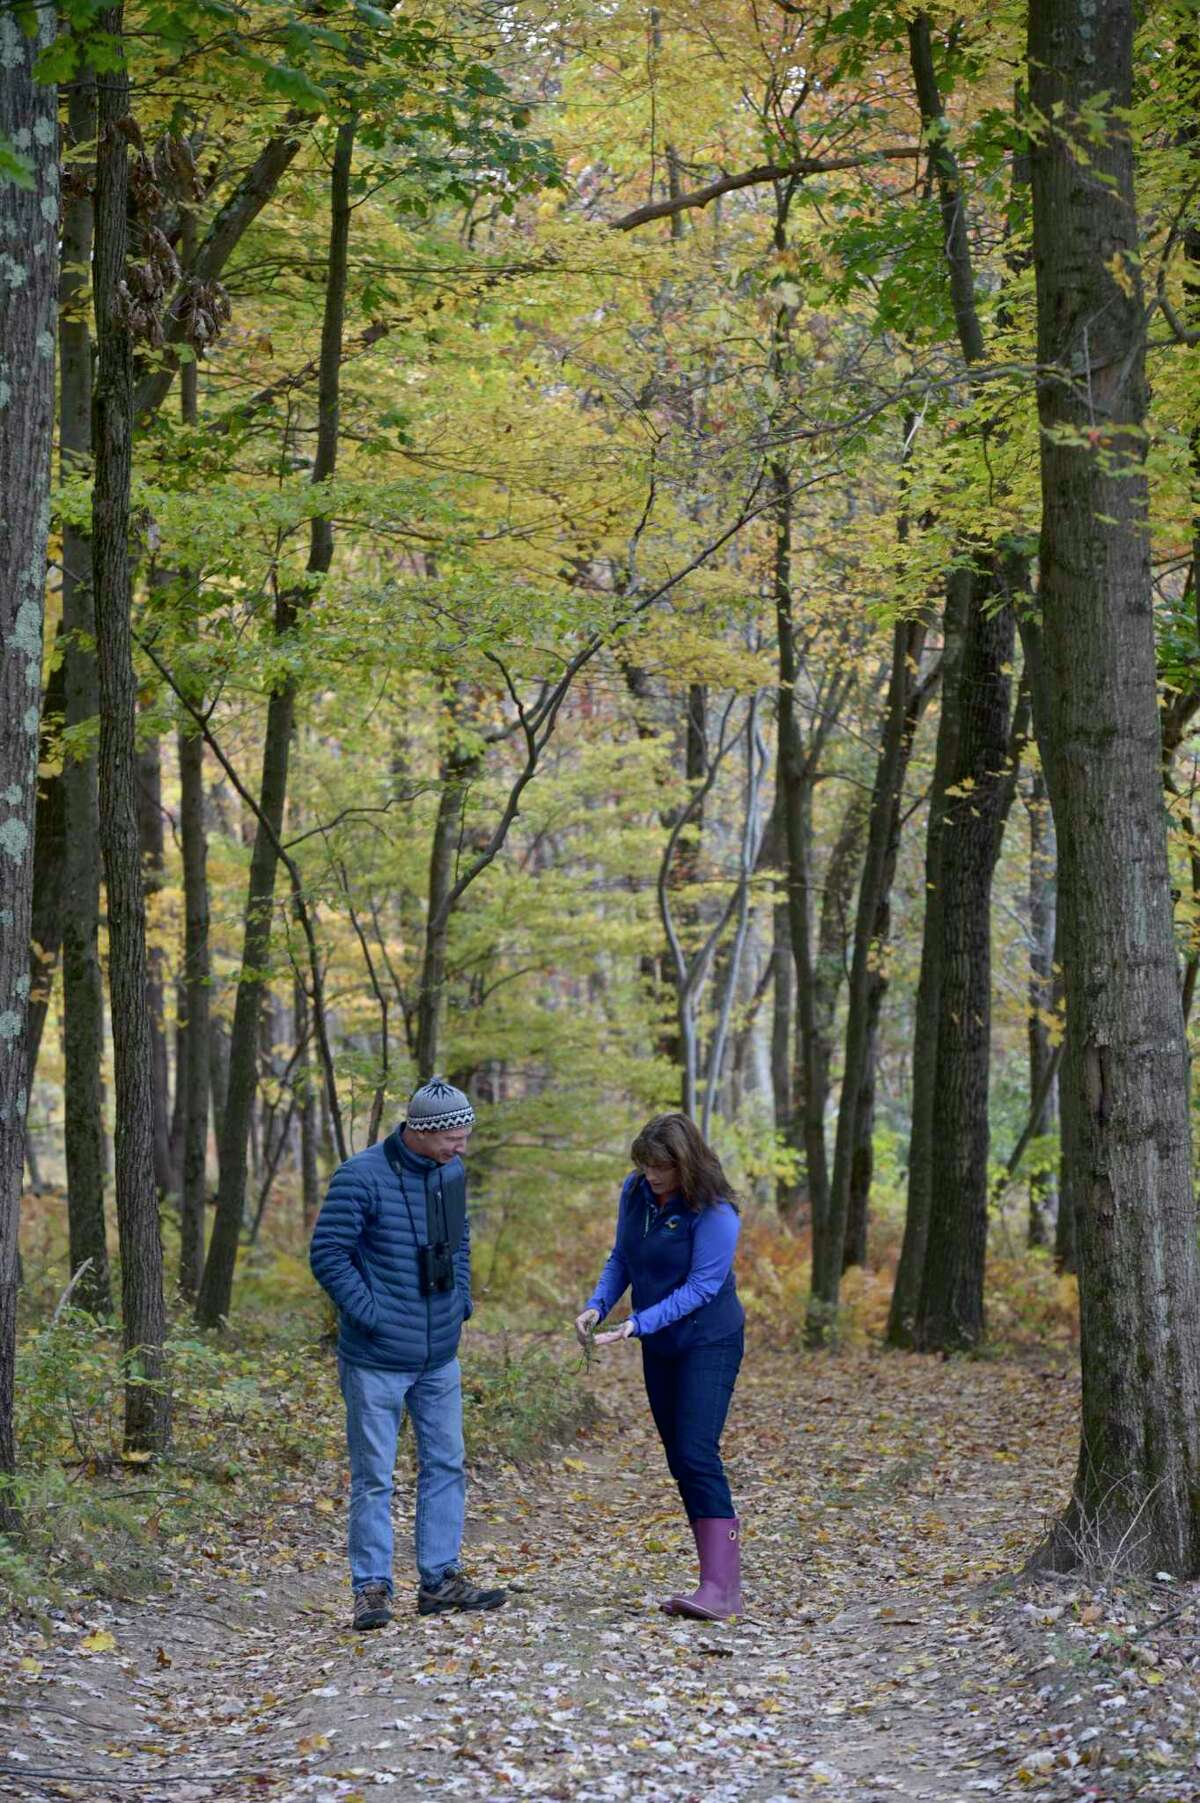 Deer Pond Farm director Cathy Hagadorn, right, and biologist Jim Arrigoni on one of the trails at Deer Pond Farm in Sherman, Conn., in October 2019.